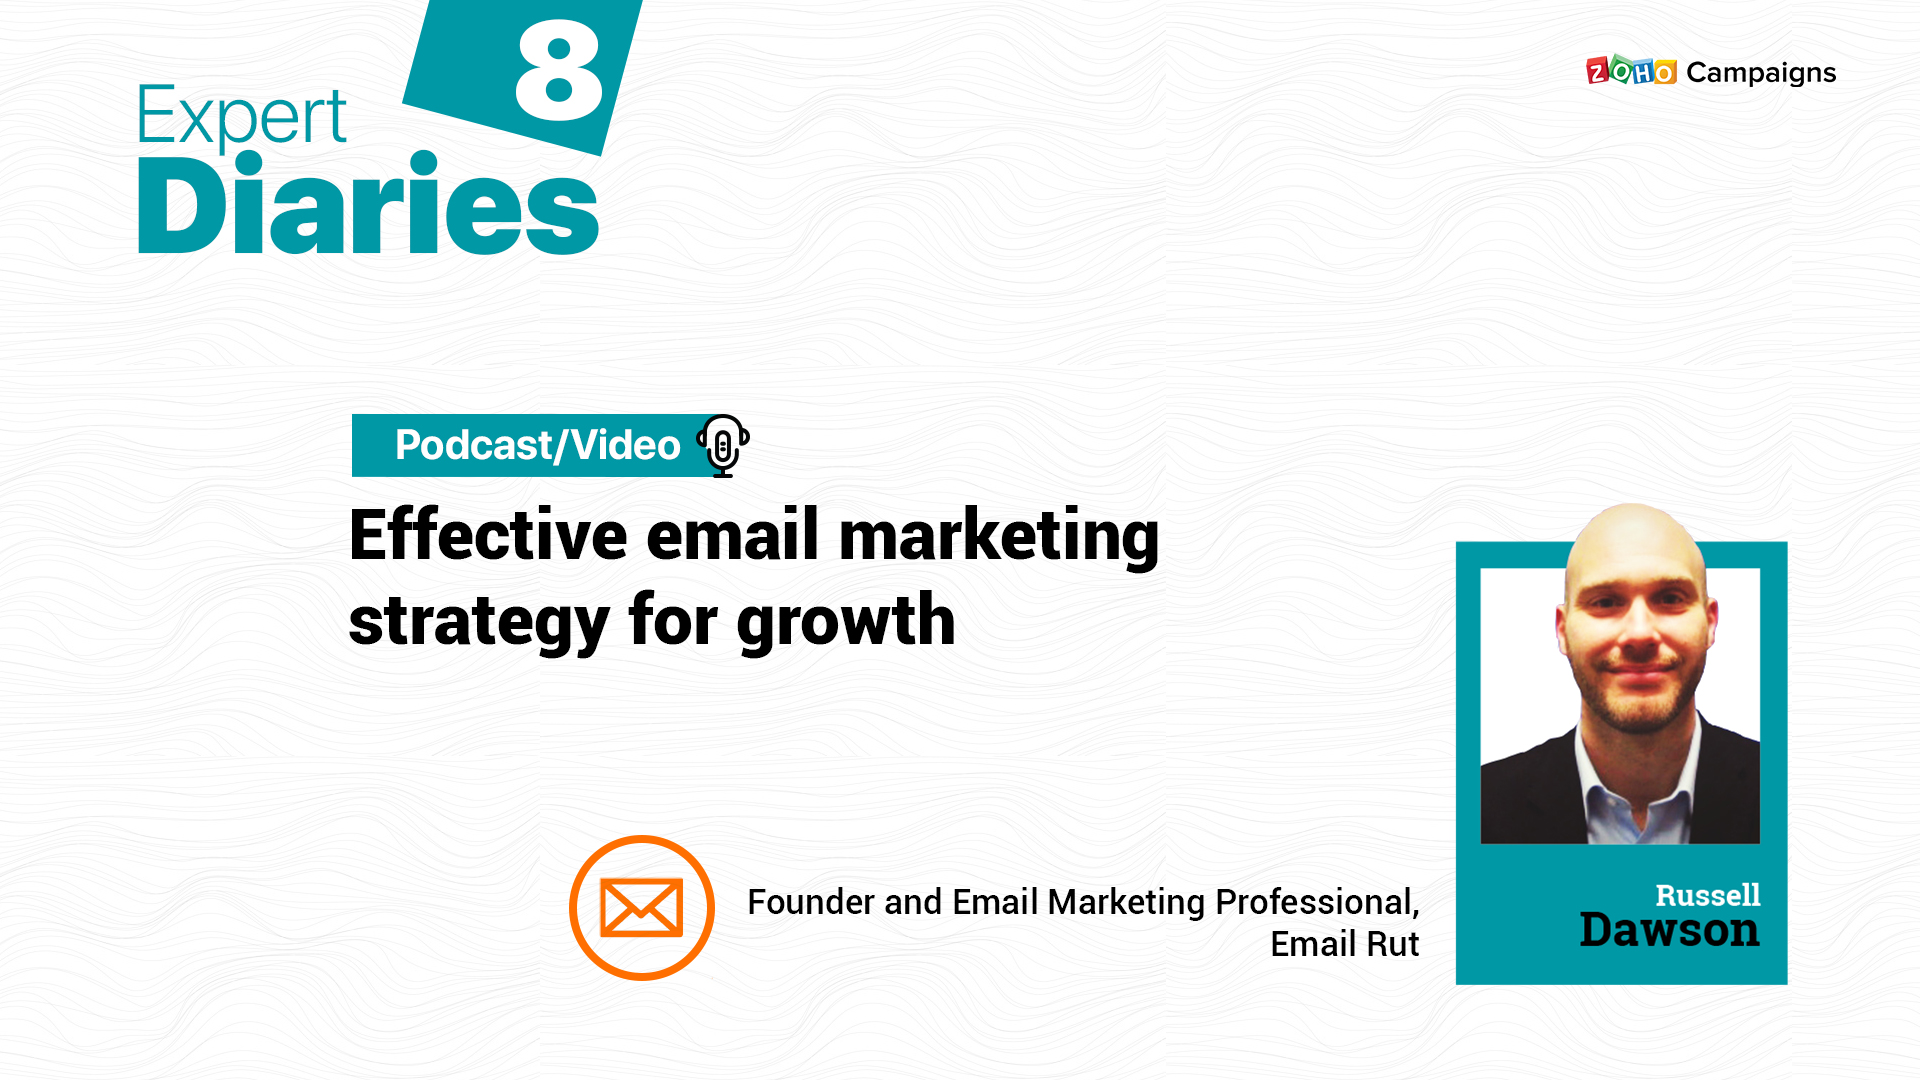 Effective email marketing strategy for growth